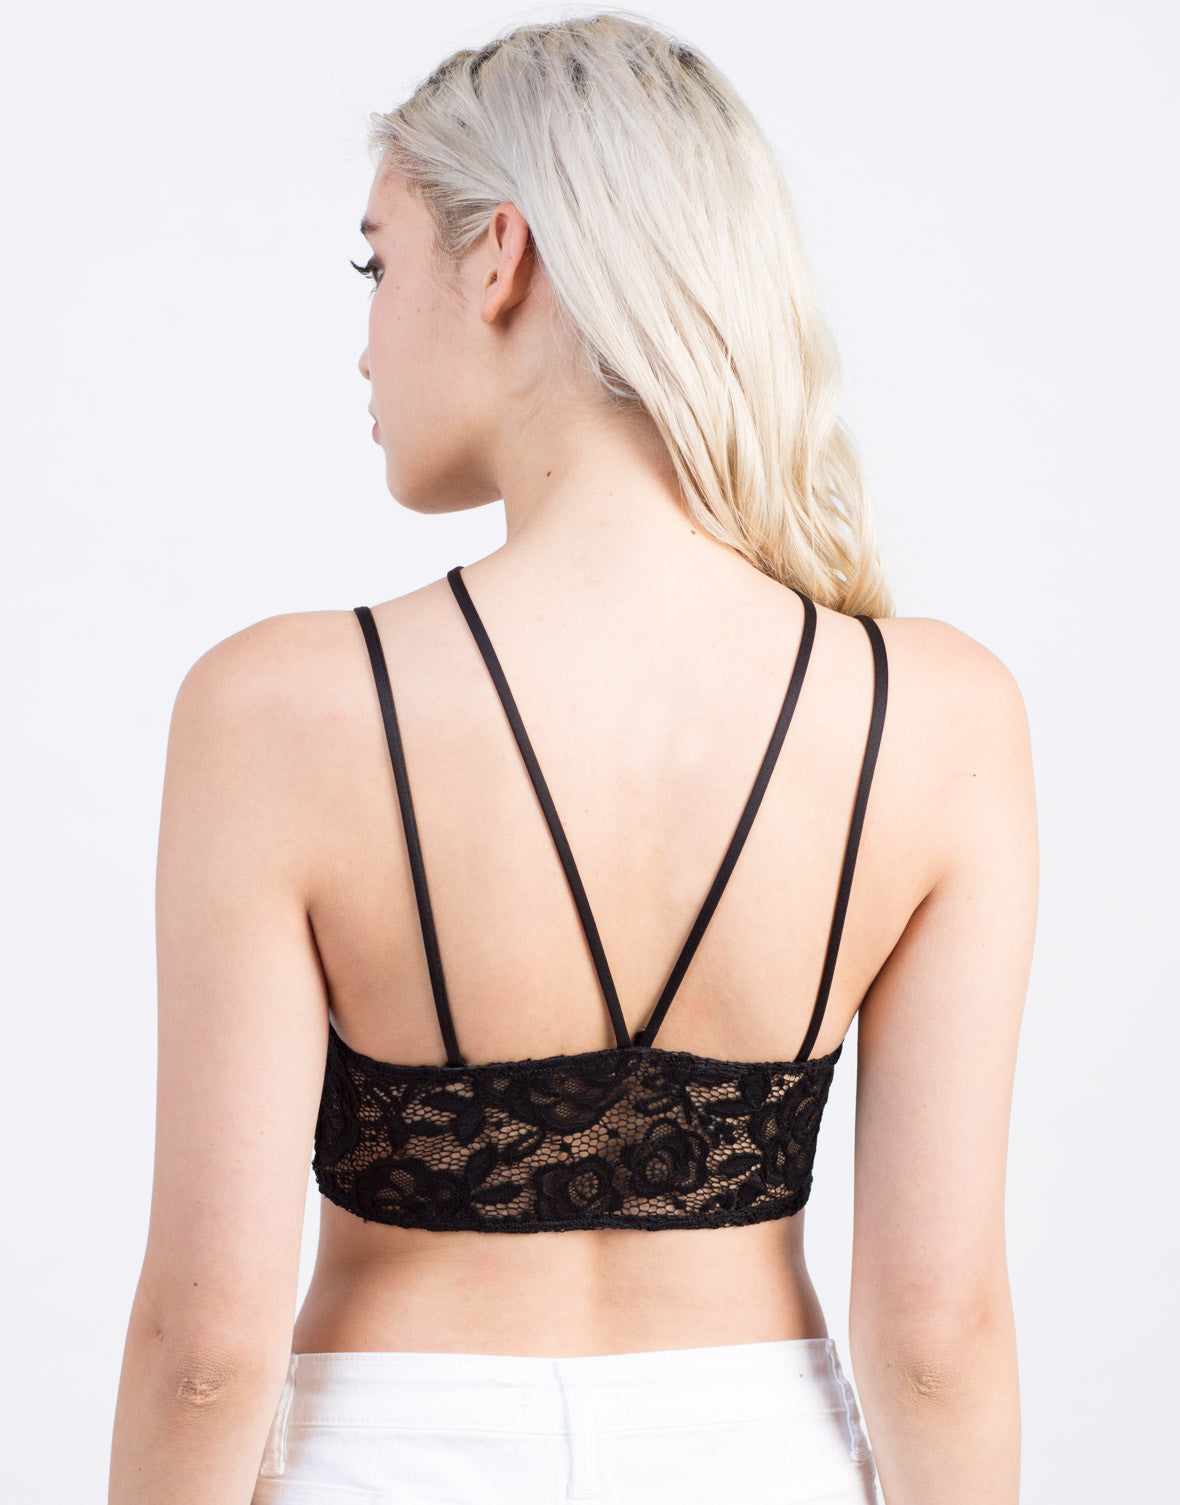 Back View of Strappy Lace Bralette